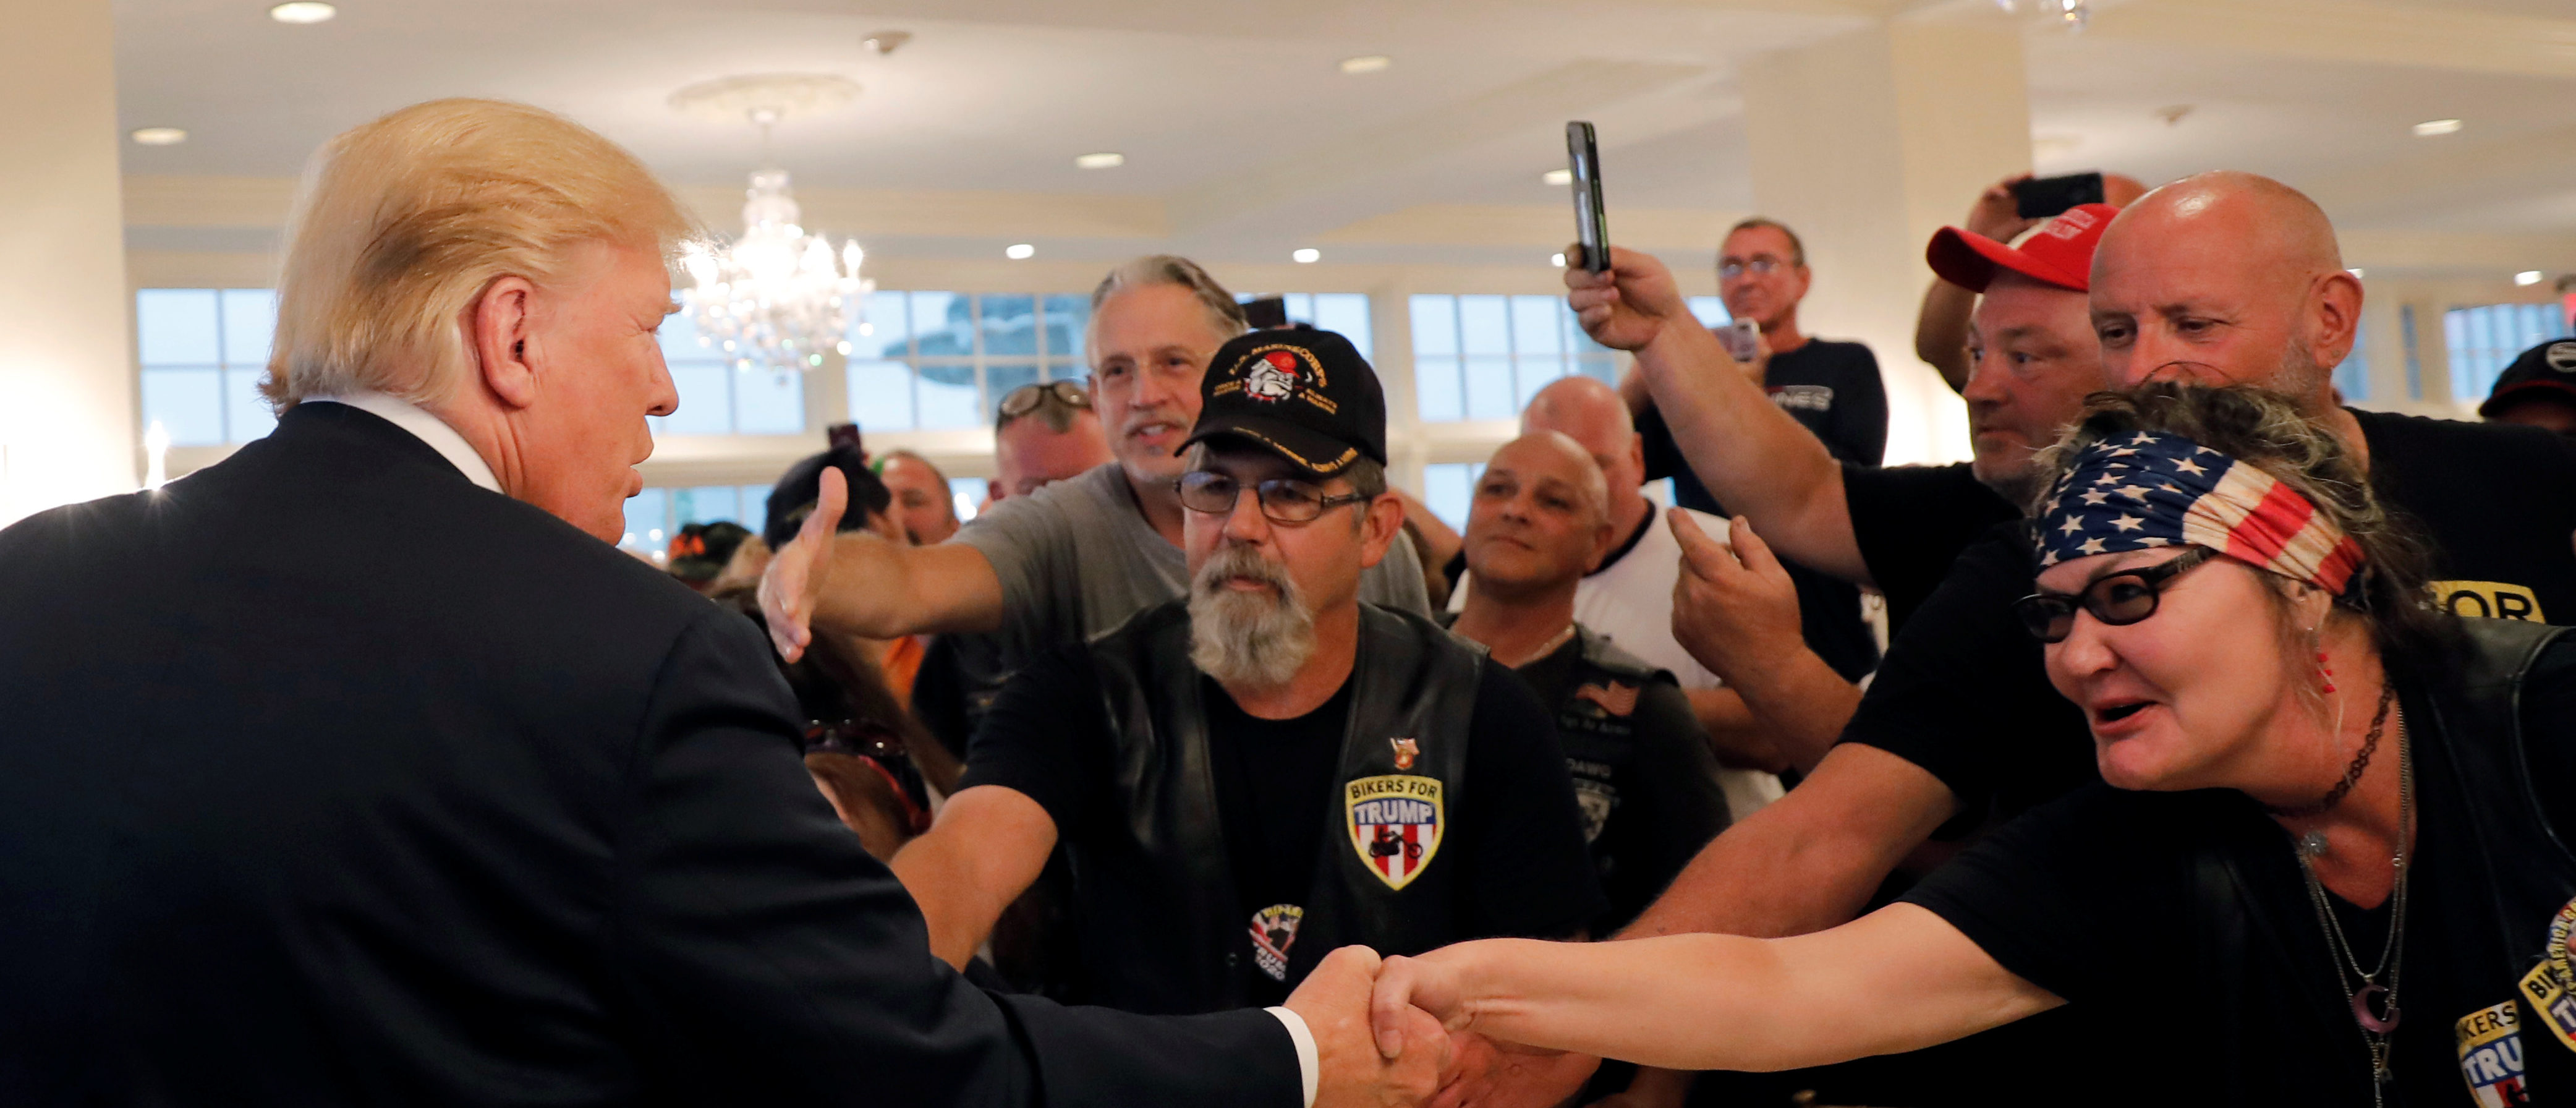 """U.S. President Donald Trump meets with supporters from a group called """"Bikers for Trump"""" at the Trump National Golf Club in Bedminster, New Jersey, U.S., August 11, 2018. REUTERS/Carlos Barria"""